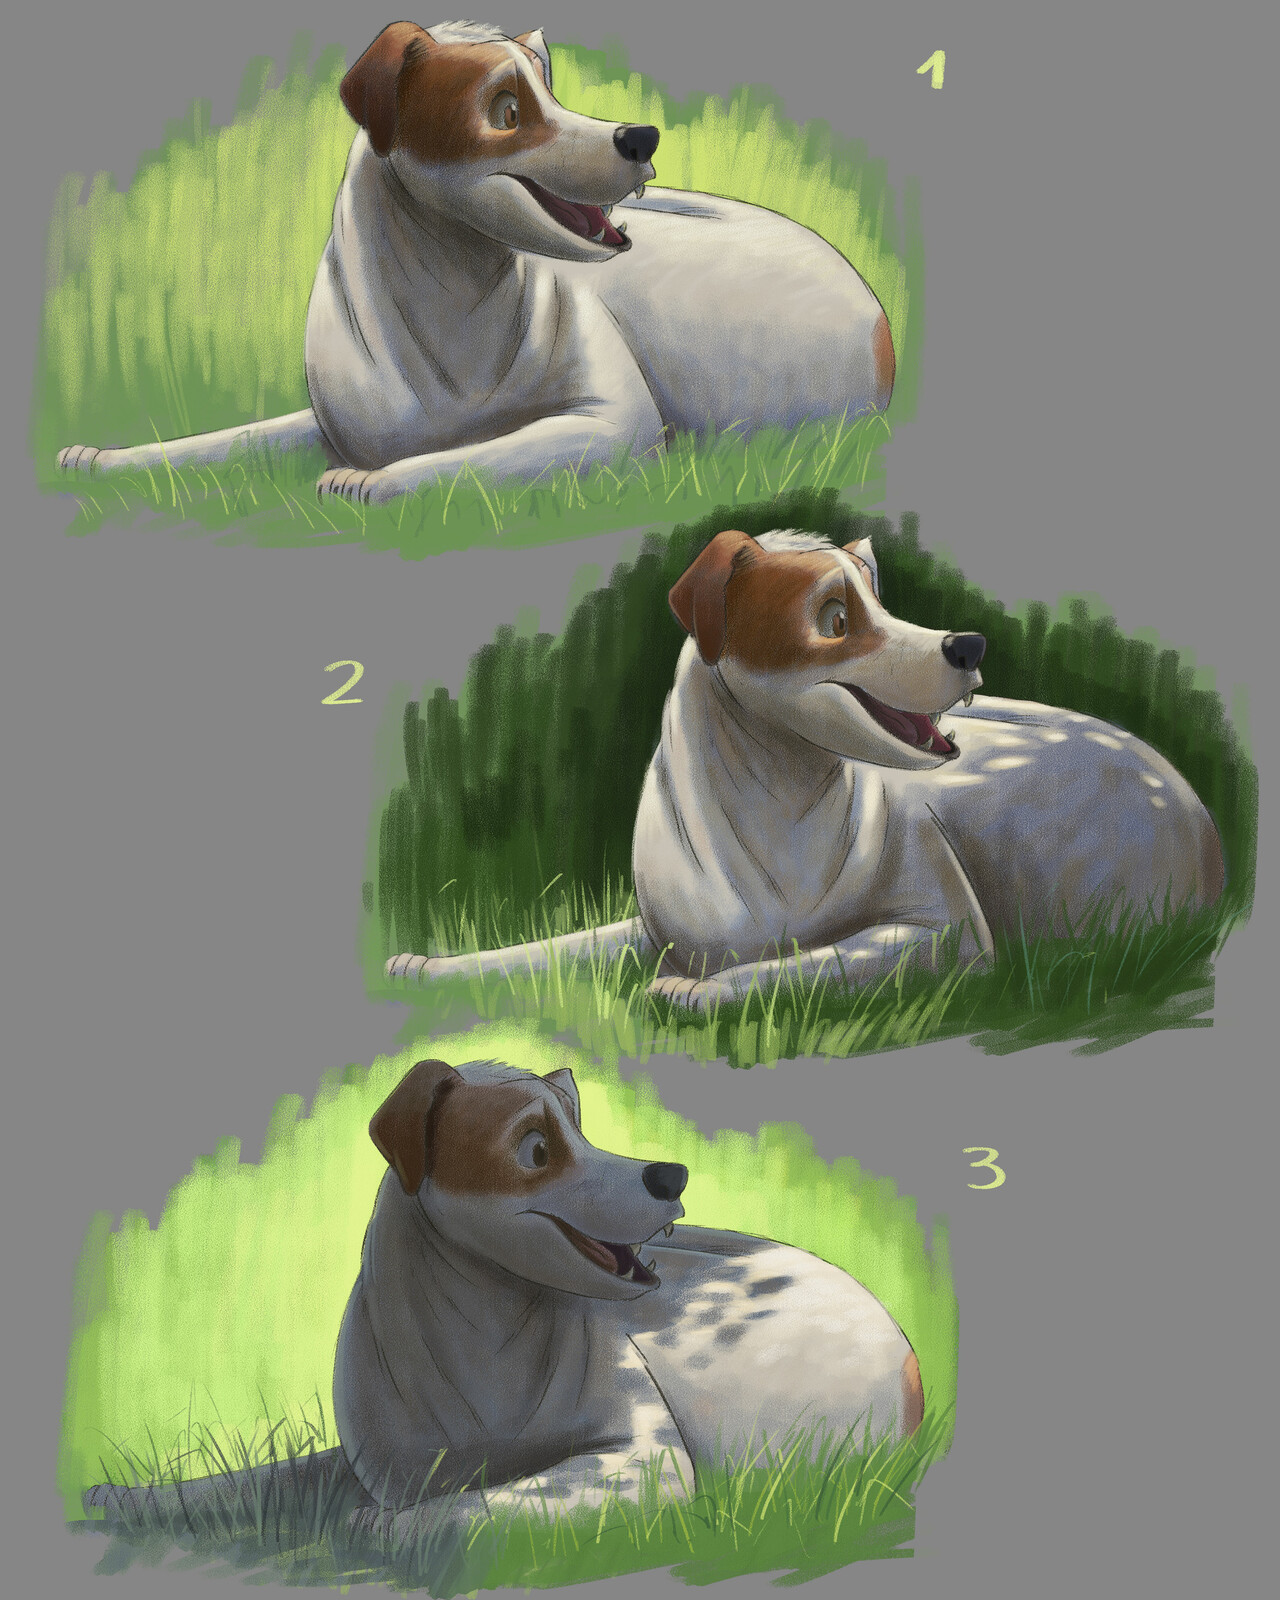 Light studies application